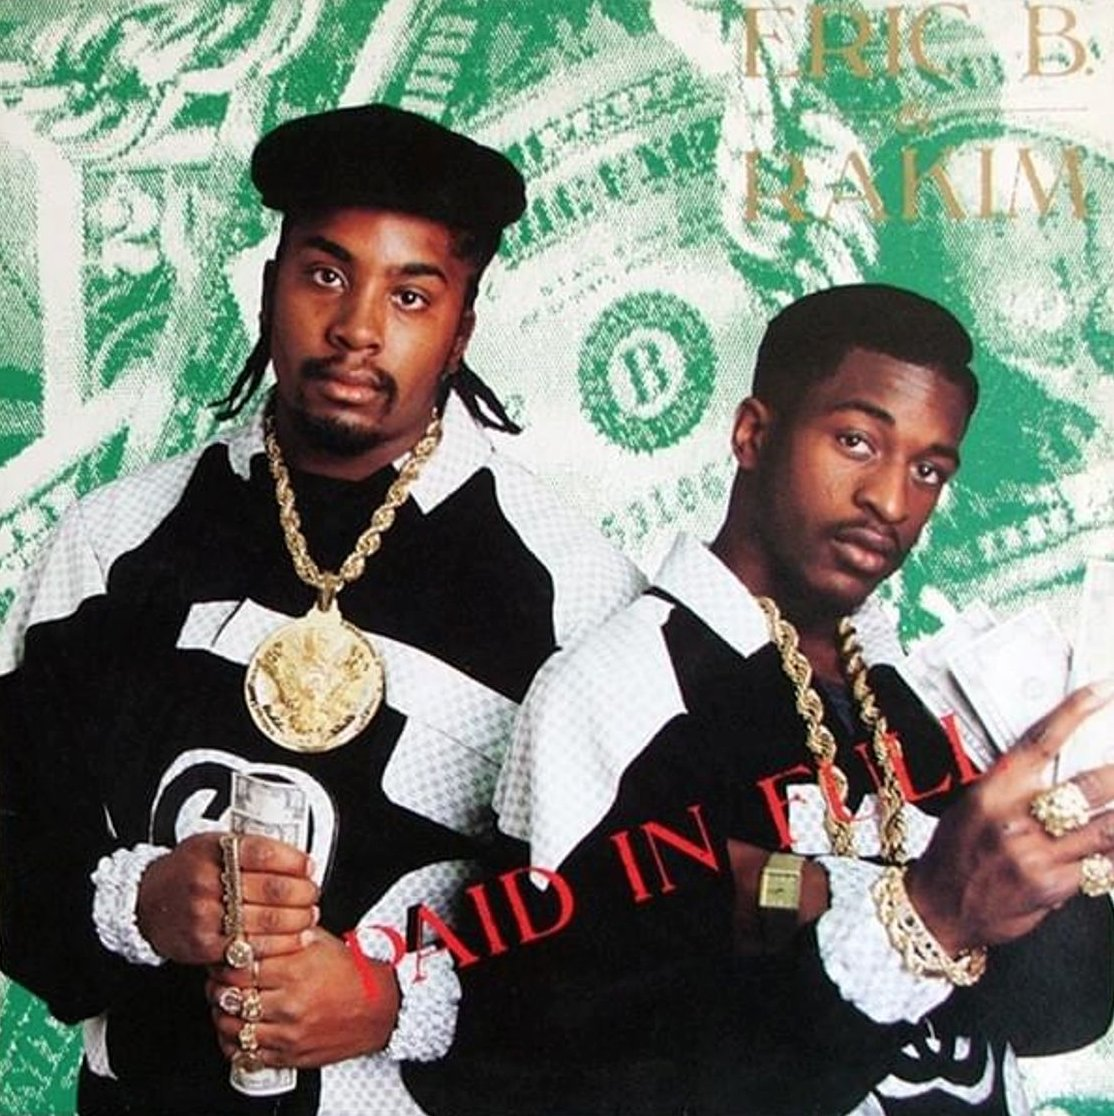 Eric B & Rakim released Paid In Full on this day in 1987.